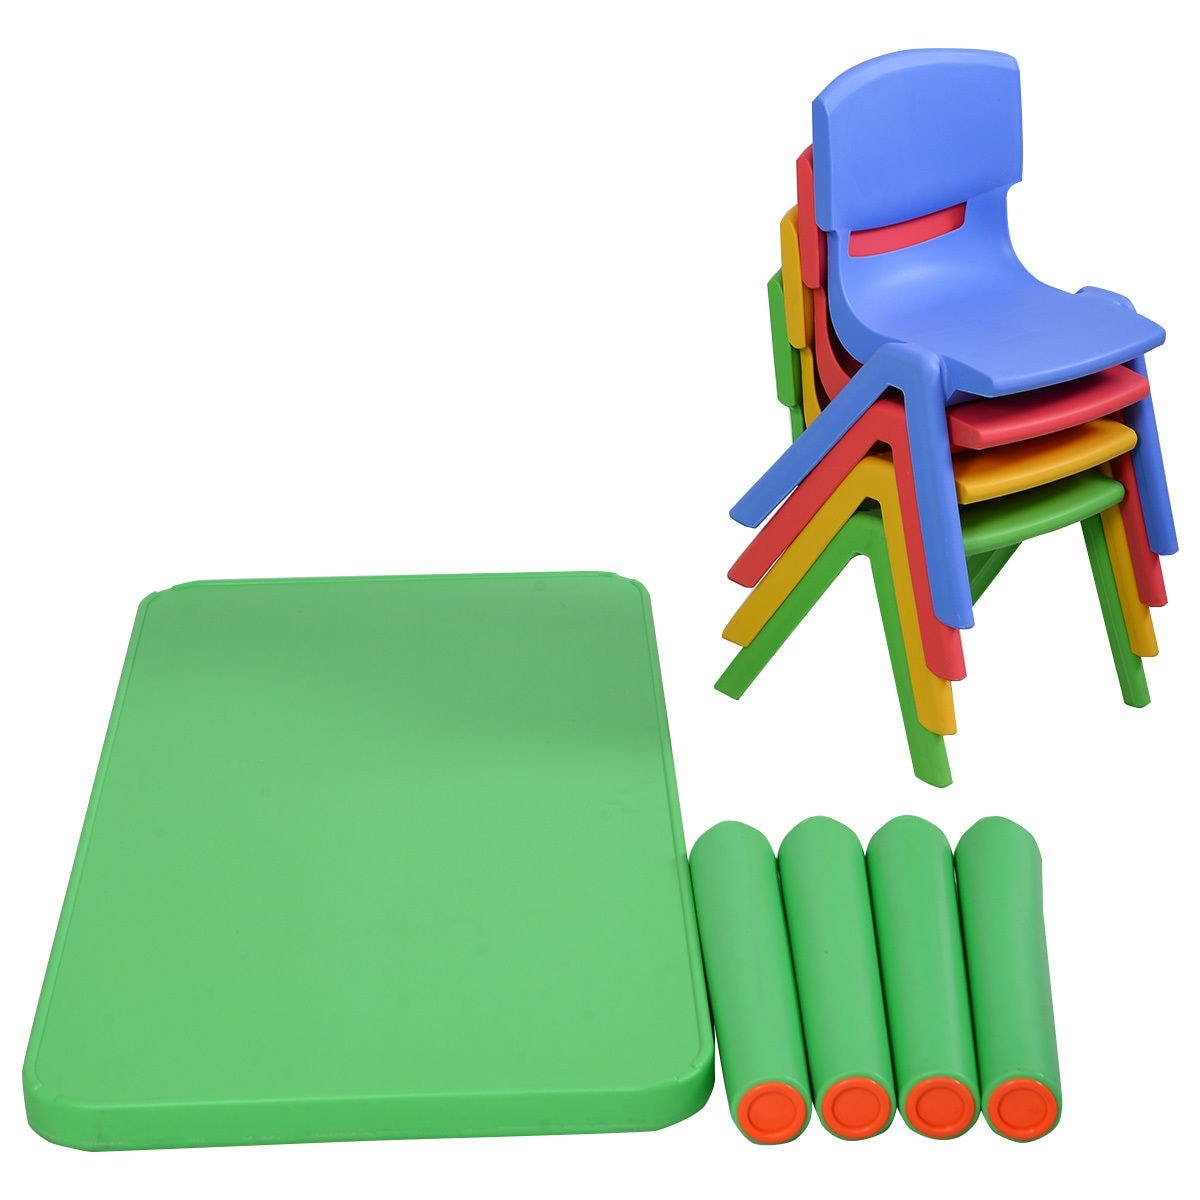 Shop Costway Kids Plastic Table And 4 Chairs Set Colorful Play School Home  Fun Furniture   As Pic   On Sale   Free Shipping Today   Overstock.com    17765575